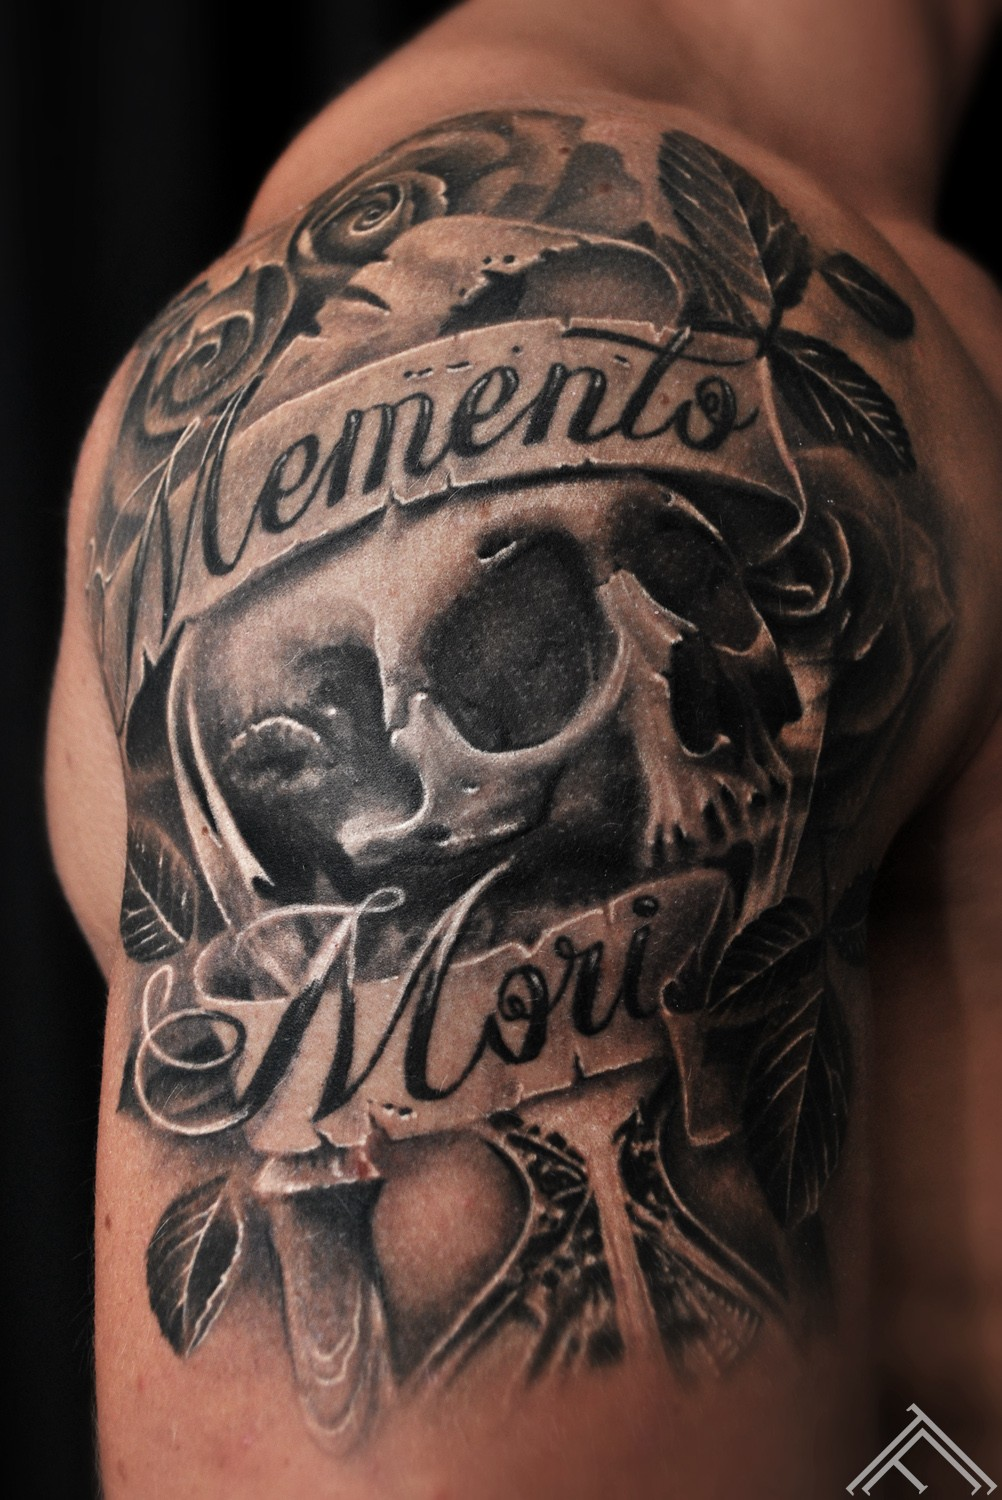 momentomori_rose_roses_tattoo_skull_sand_clock_glass_retro_leaves_tattoofrequency_marispavlo